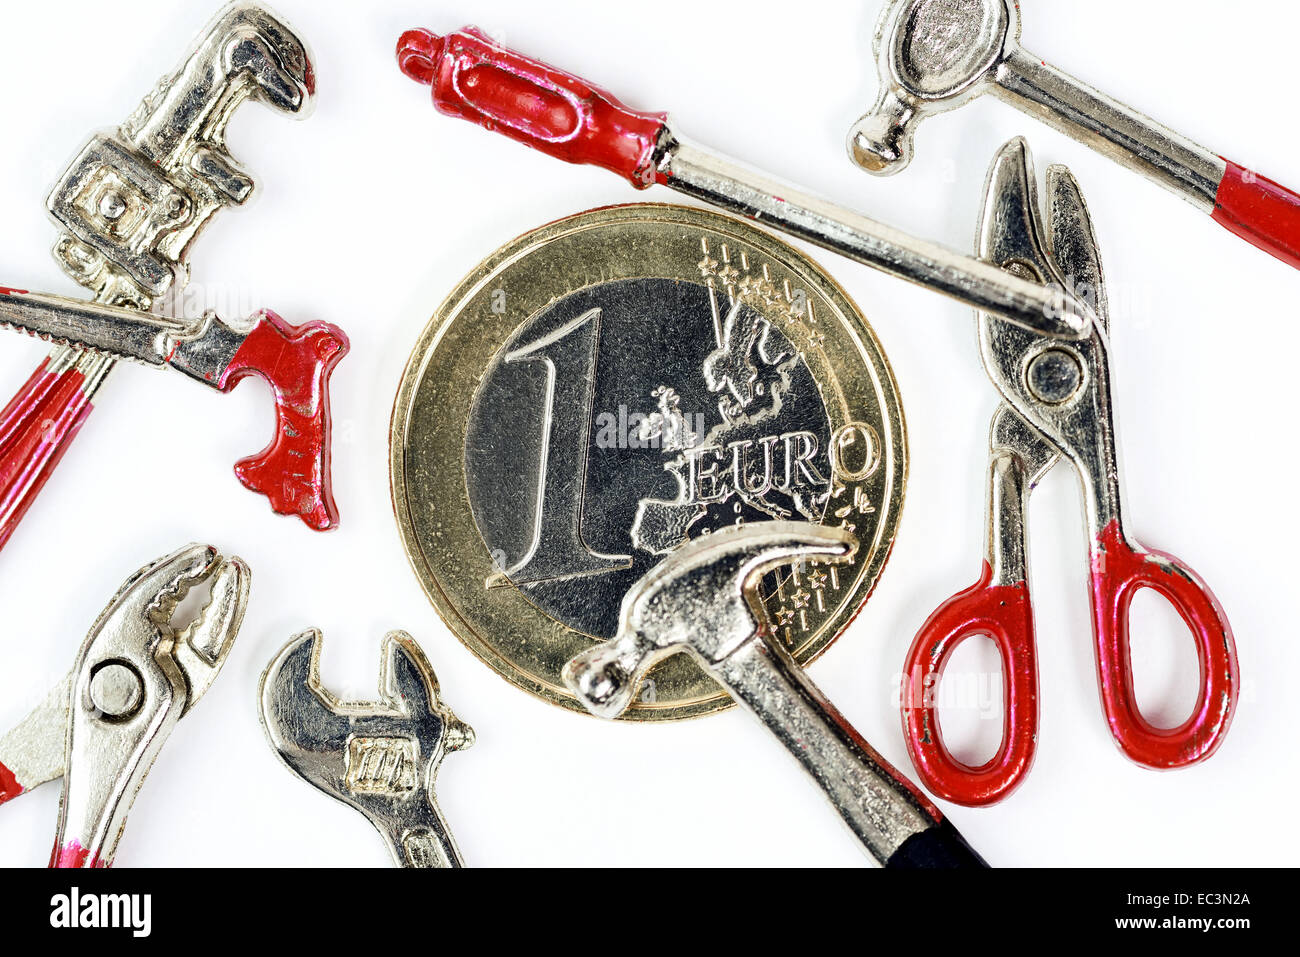 One euro coin and miniature tools, minimum wage - Stock Image